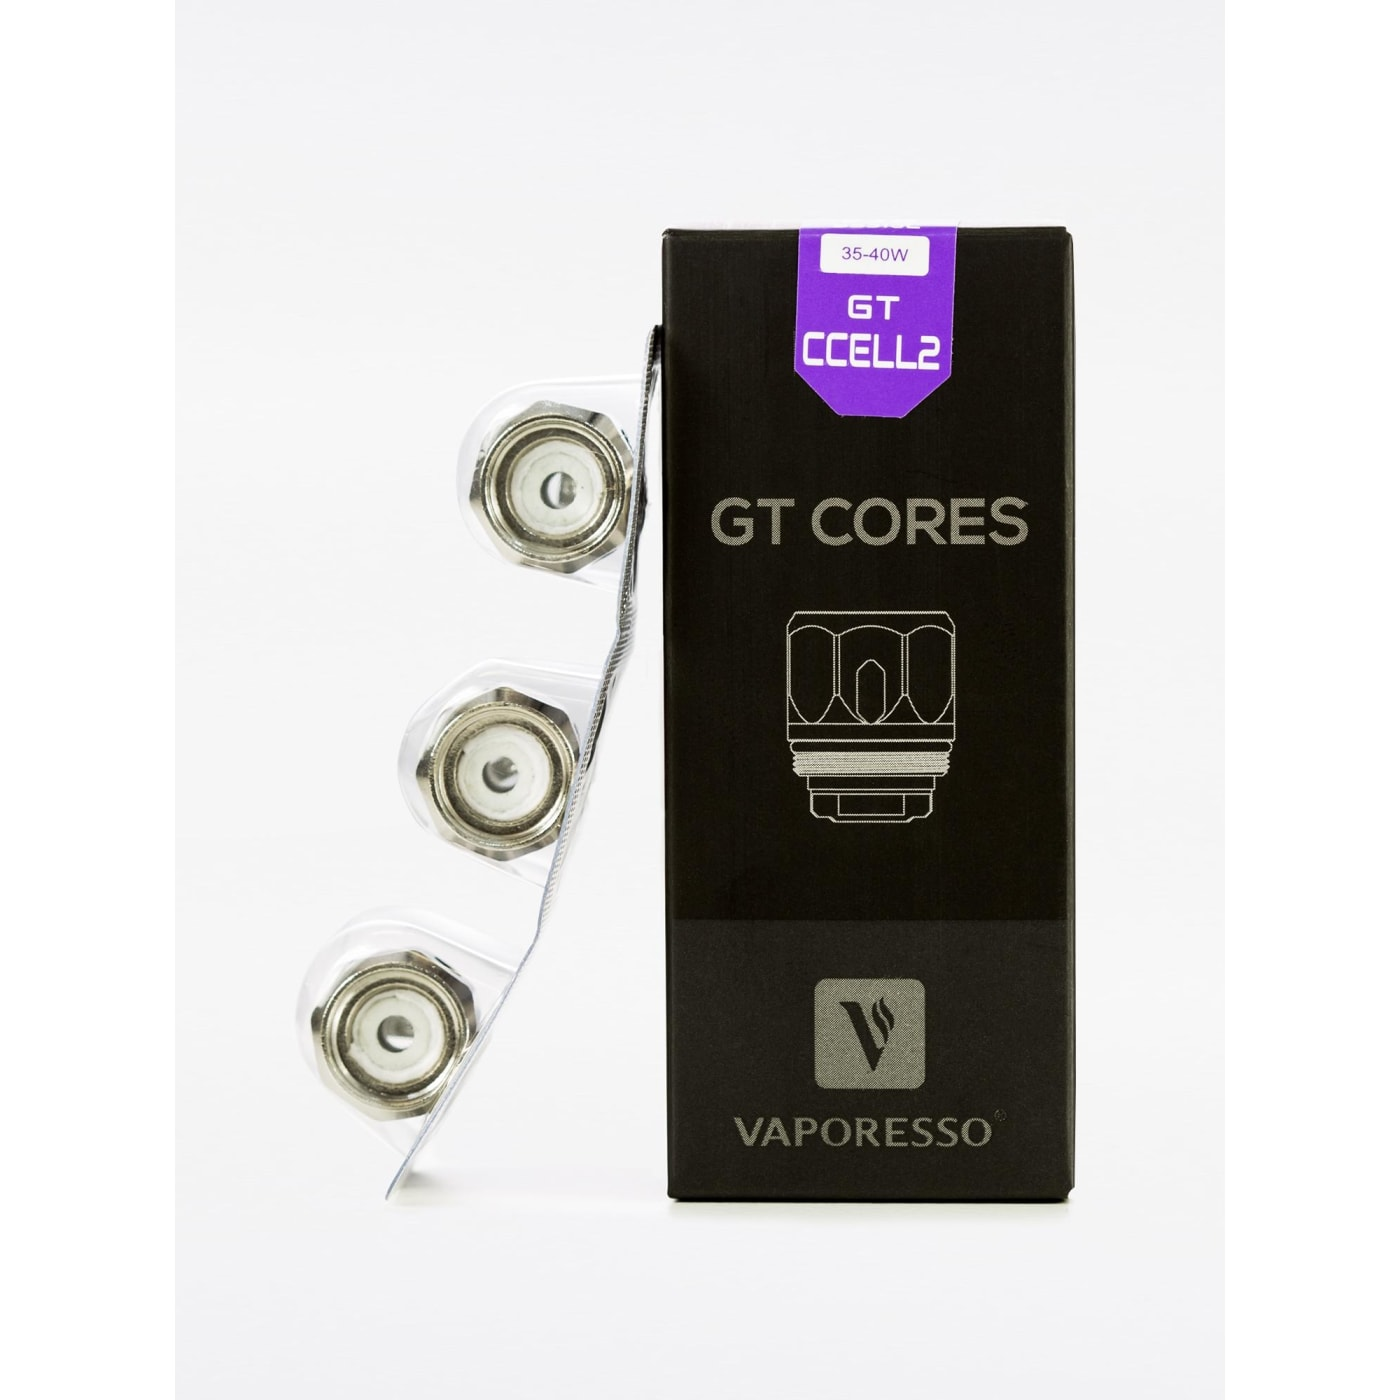 Vaporesso GT cCell 2 Replacement Coil - 3 Pack